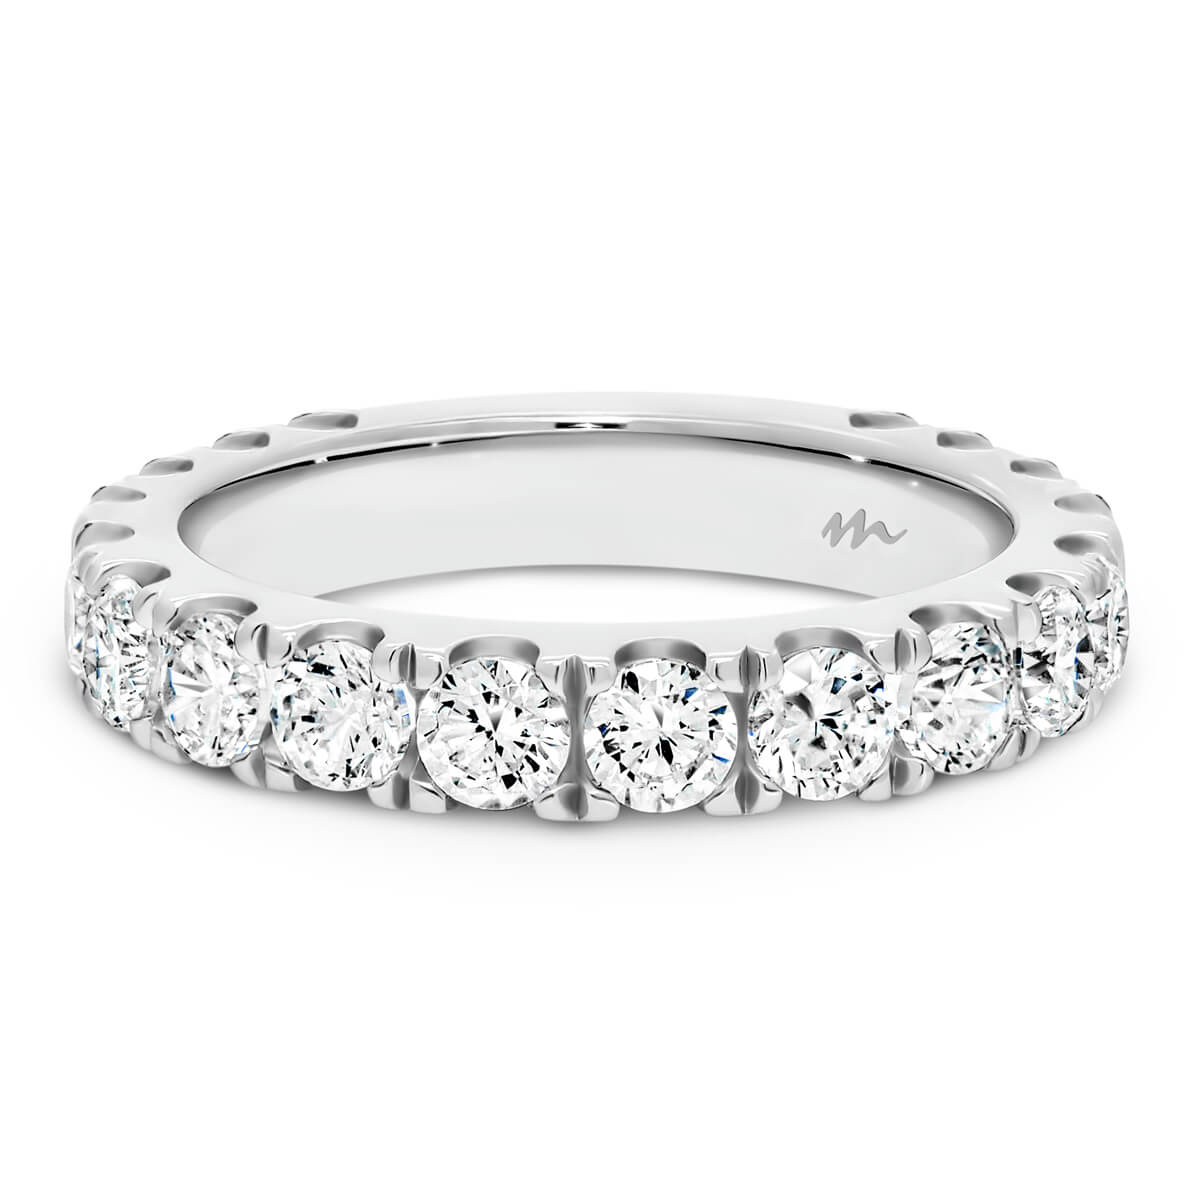 Angelica 3.0 Prong set wedding ring with individual prongs